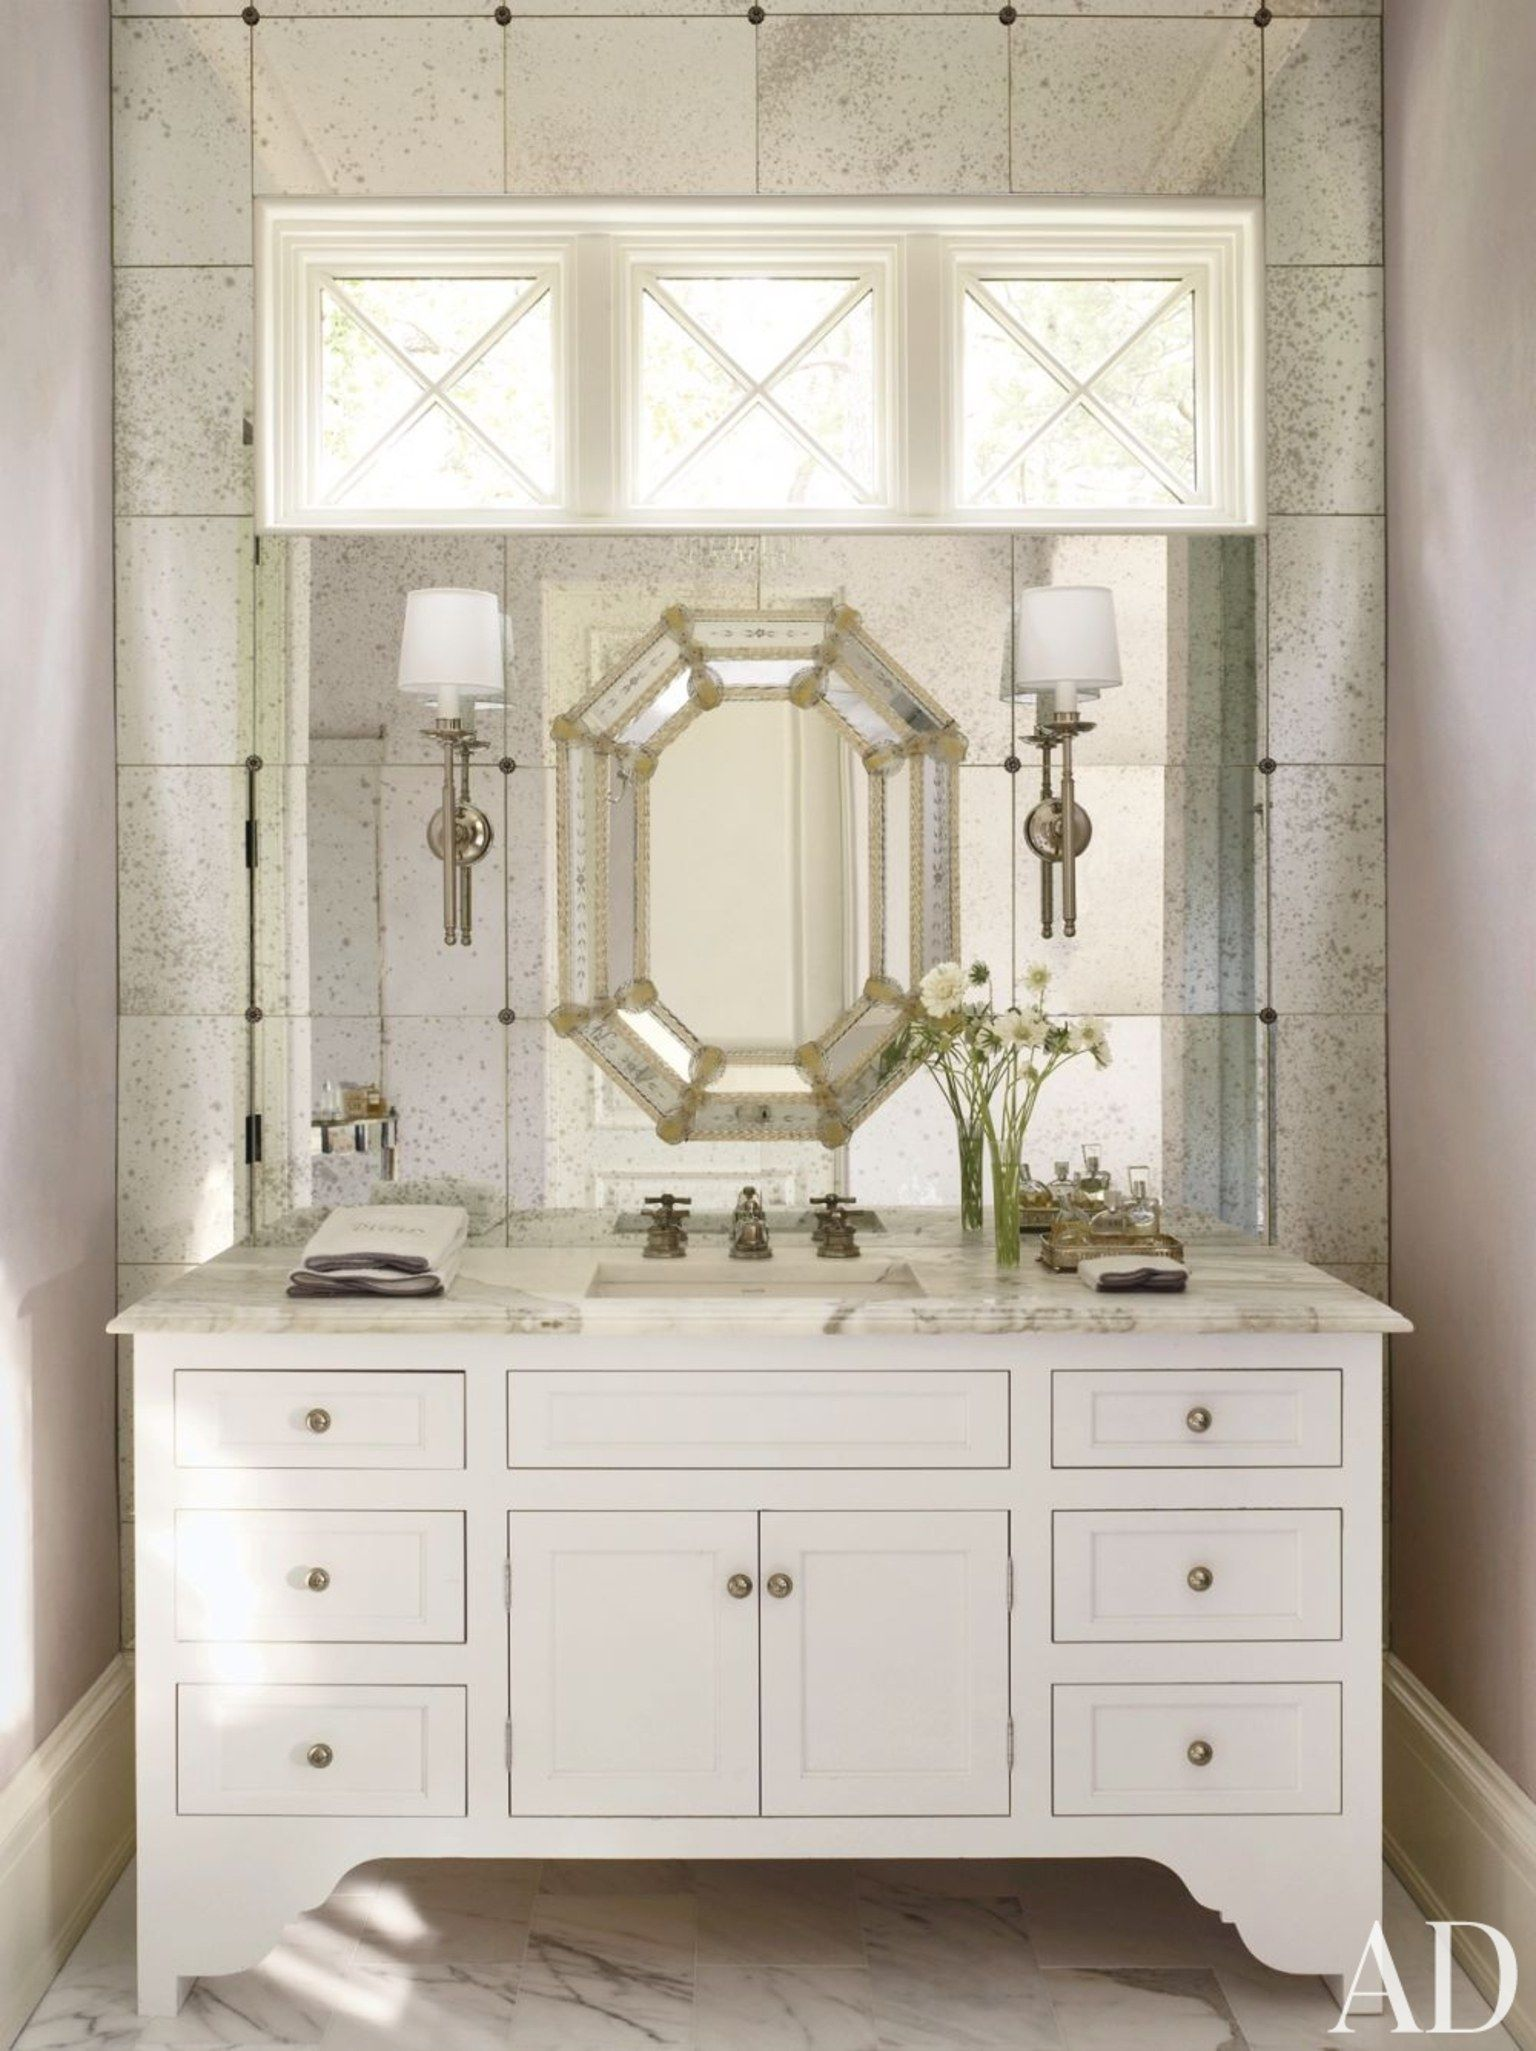 12 Bathroom Mirror Ideas for Every Style | Traditional bathroom ...